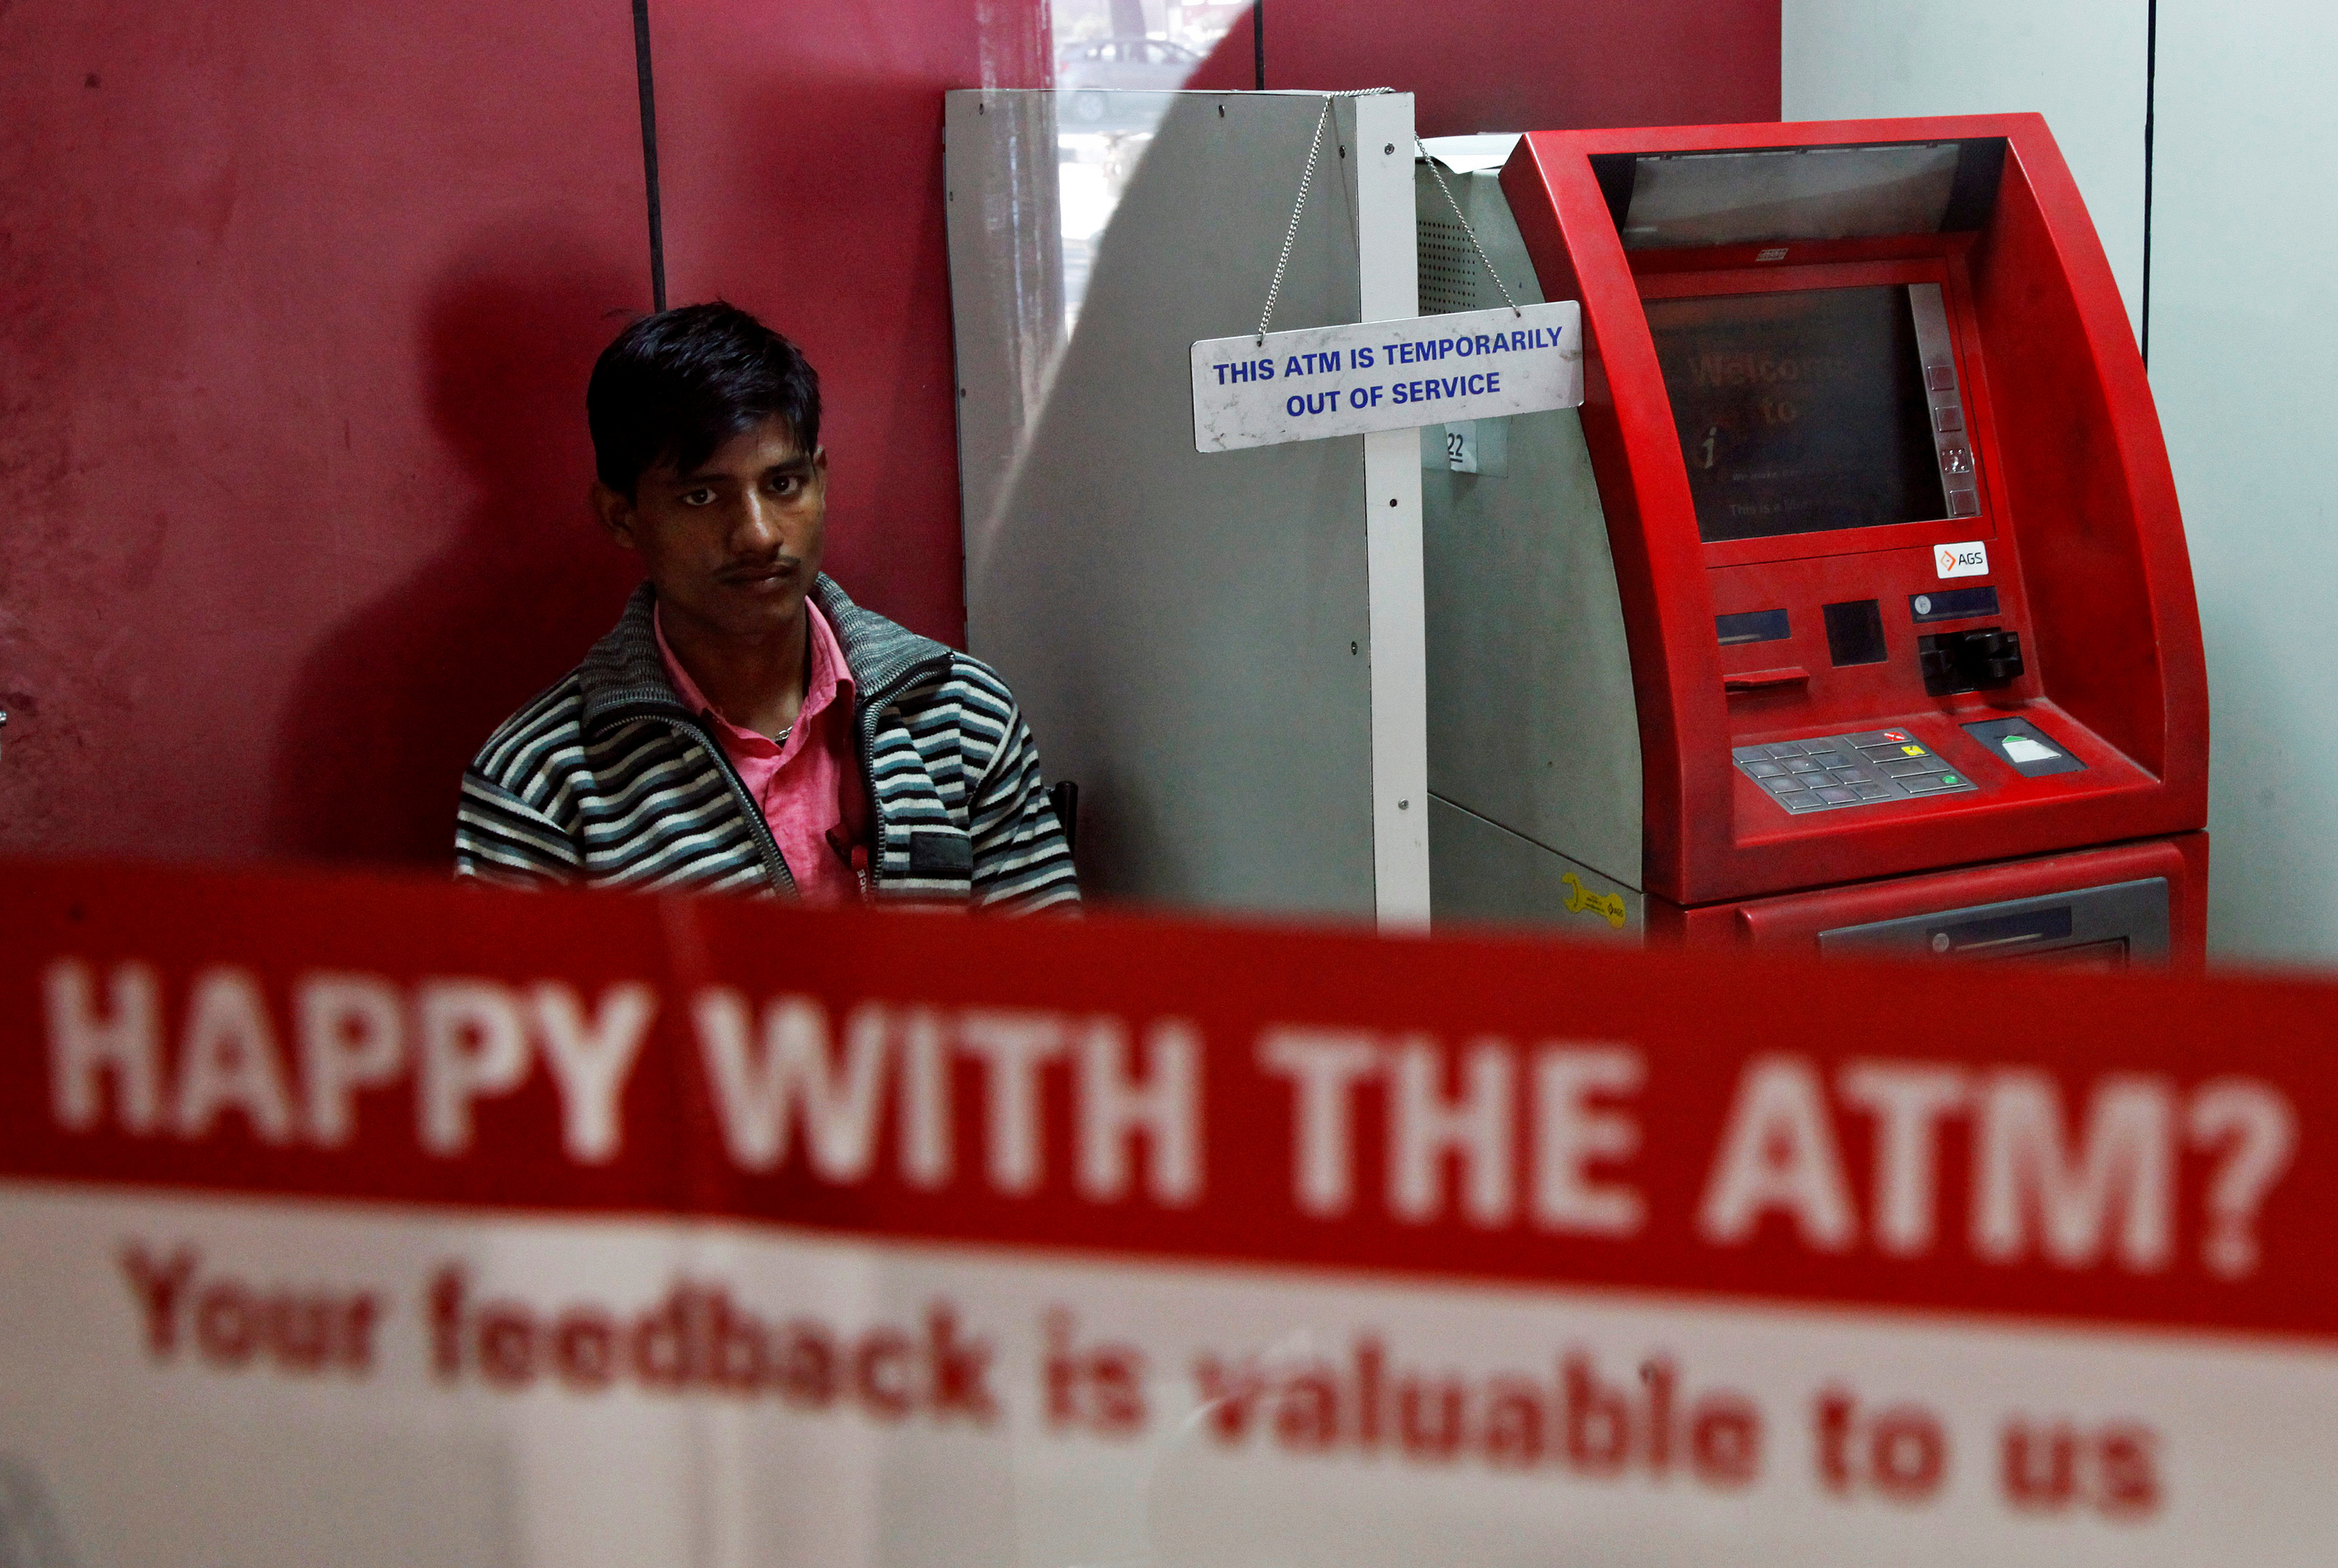 A security guard sits inside an ATM counter as a notice hangs on an ATM machine in Chandigarh, India, November 25, 2016. REUTERS/Ajay Verma